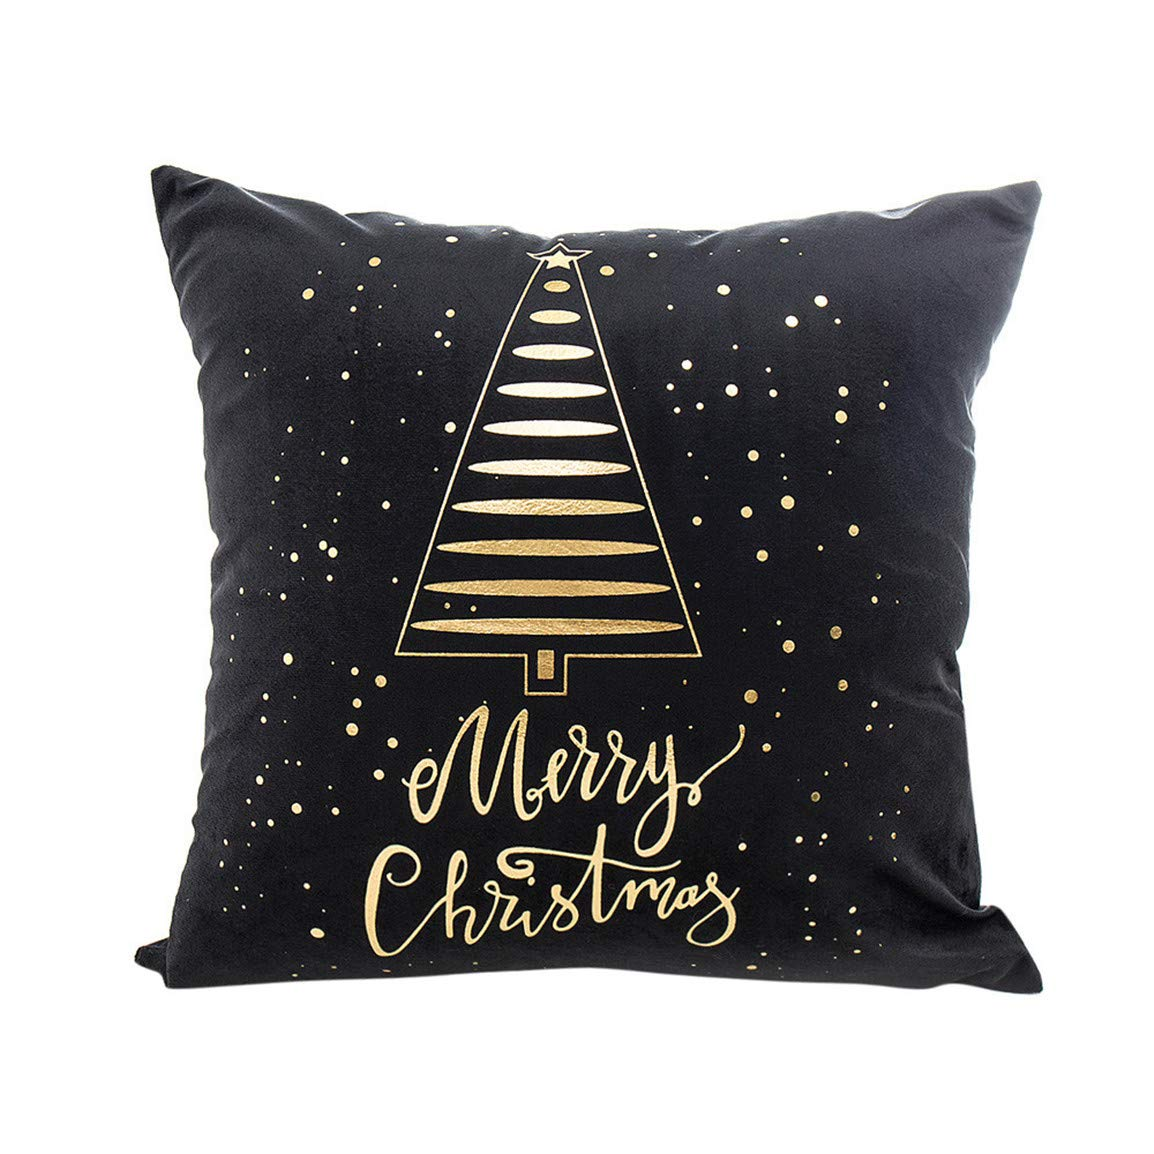 Bellelove Merry Christmas Seat Coussin/Dos Coussin Or Feuille D'impression Lavable Taie D'oreiller Canapé Taille Jet Coussin Housse